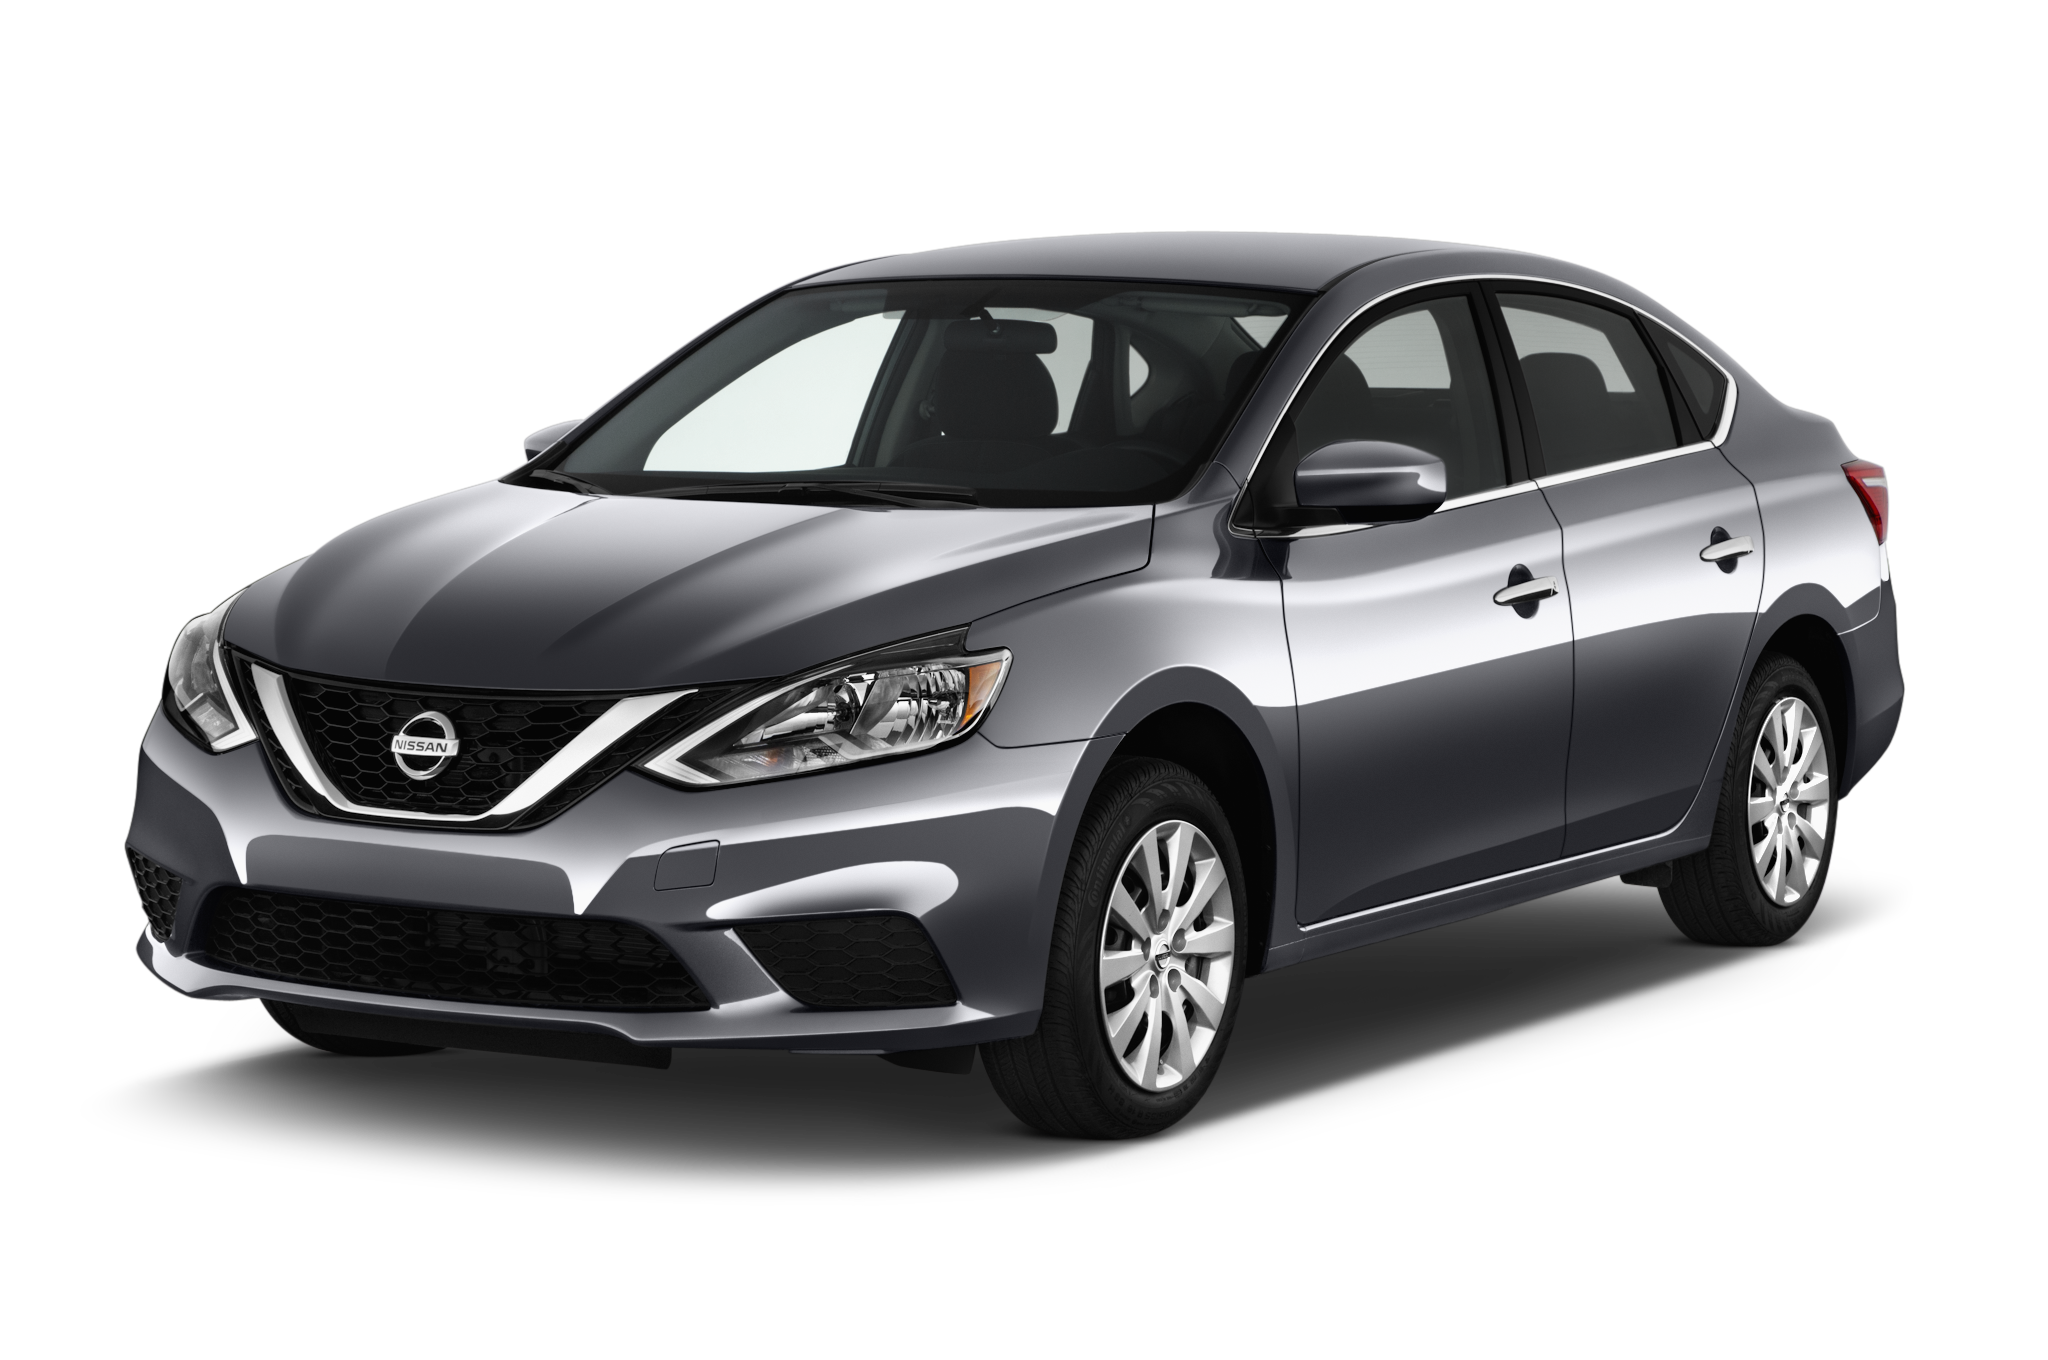 2016 Nissan Sentra Reviews.